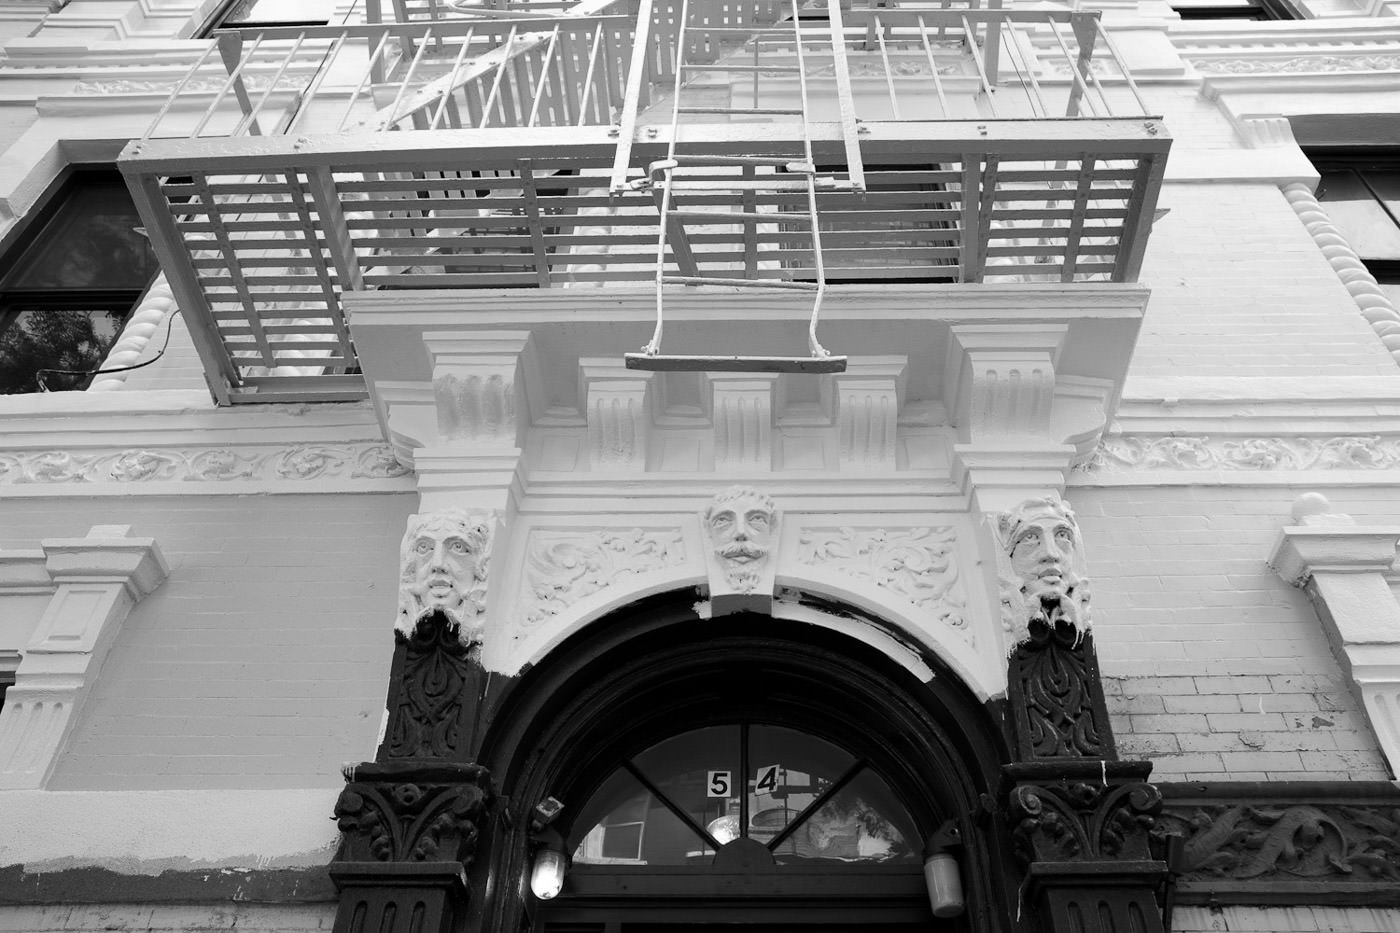 Street photography: Image of fire escape seen from below